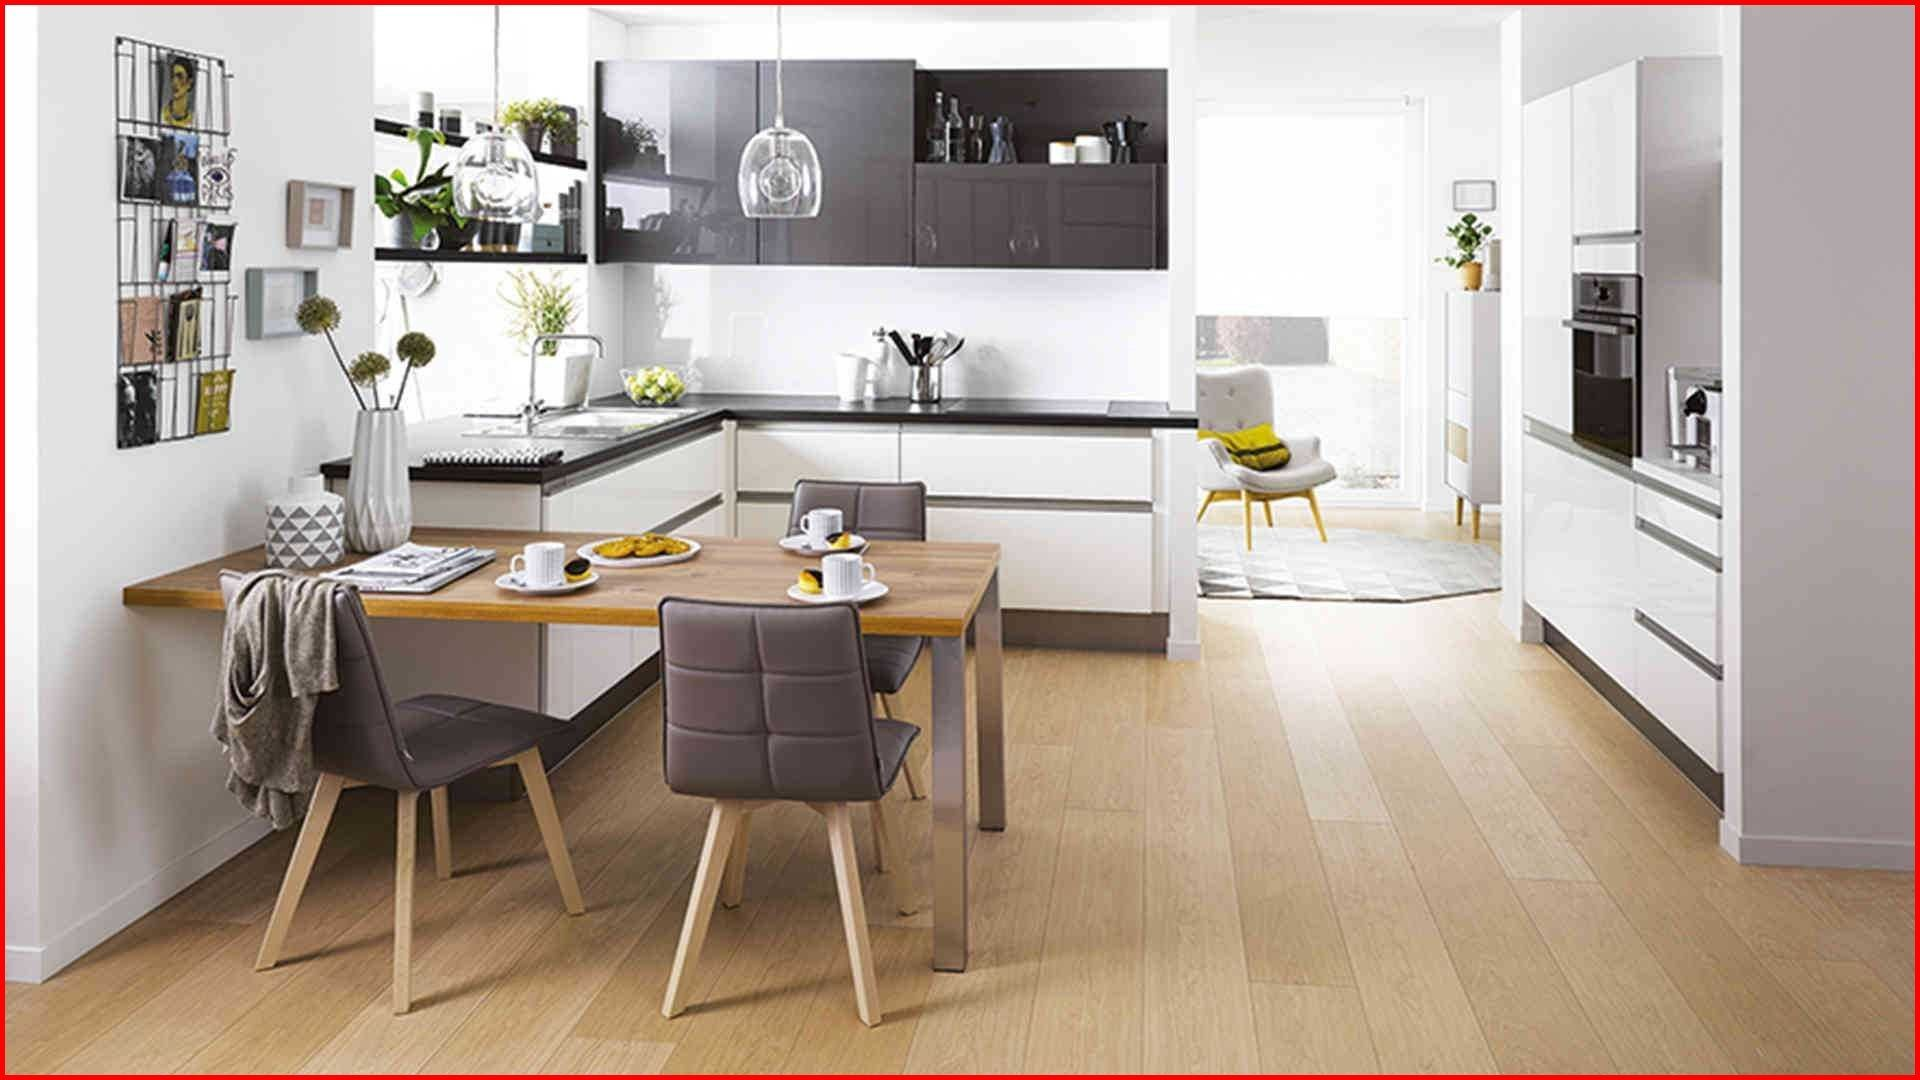 cuisine am nag e avec table int gr e cuisine ouverte ilot. Black Bedroom Furniture Sets. Home Design Ideas